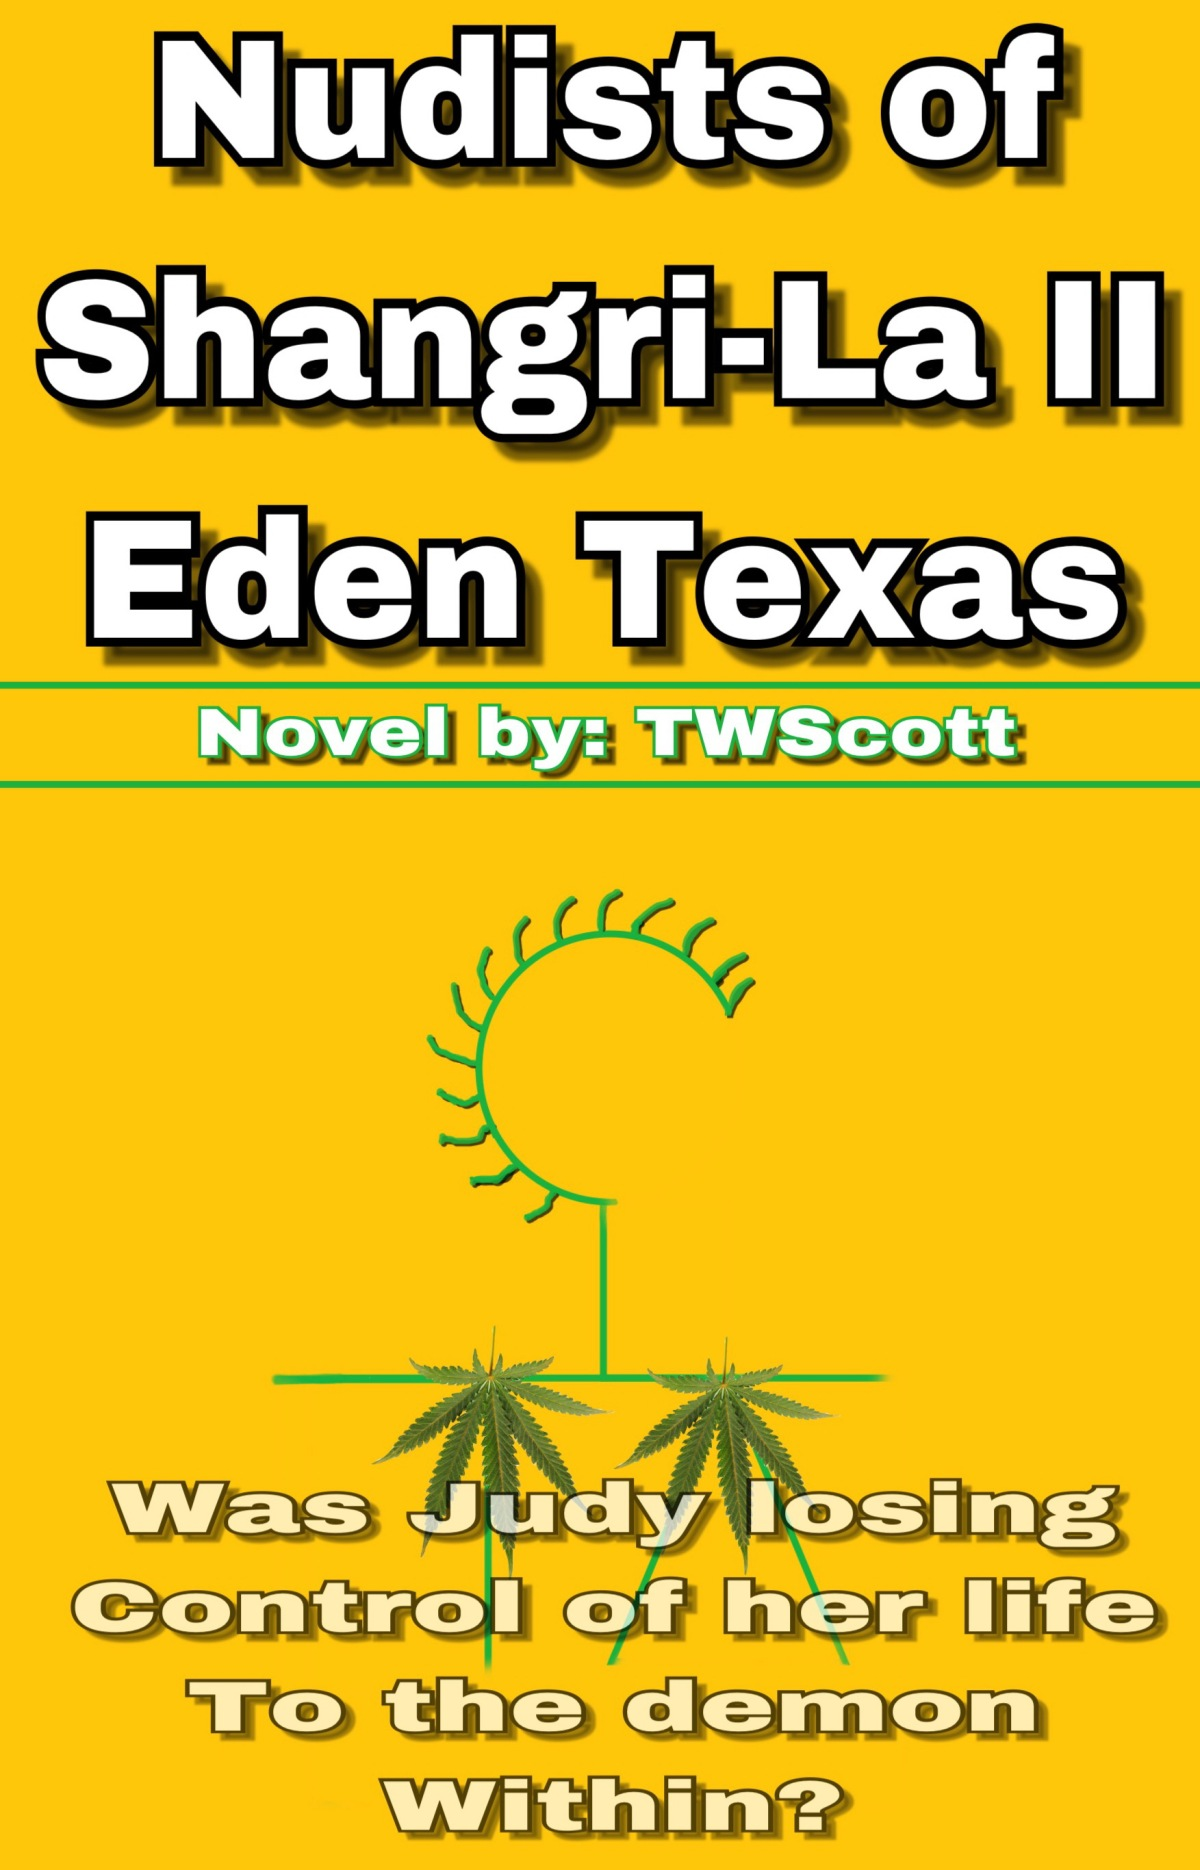 New Release of Nudists of Shangri-La II Eden Texas